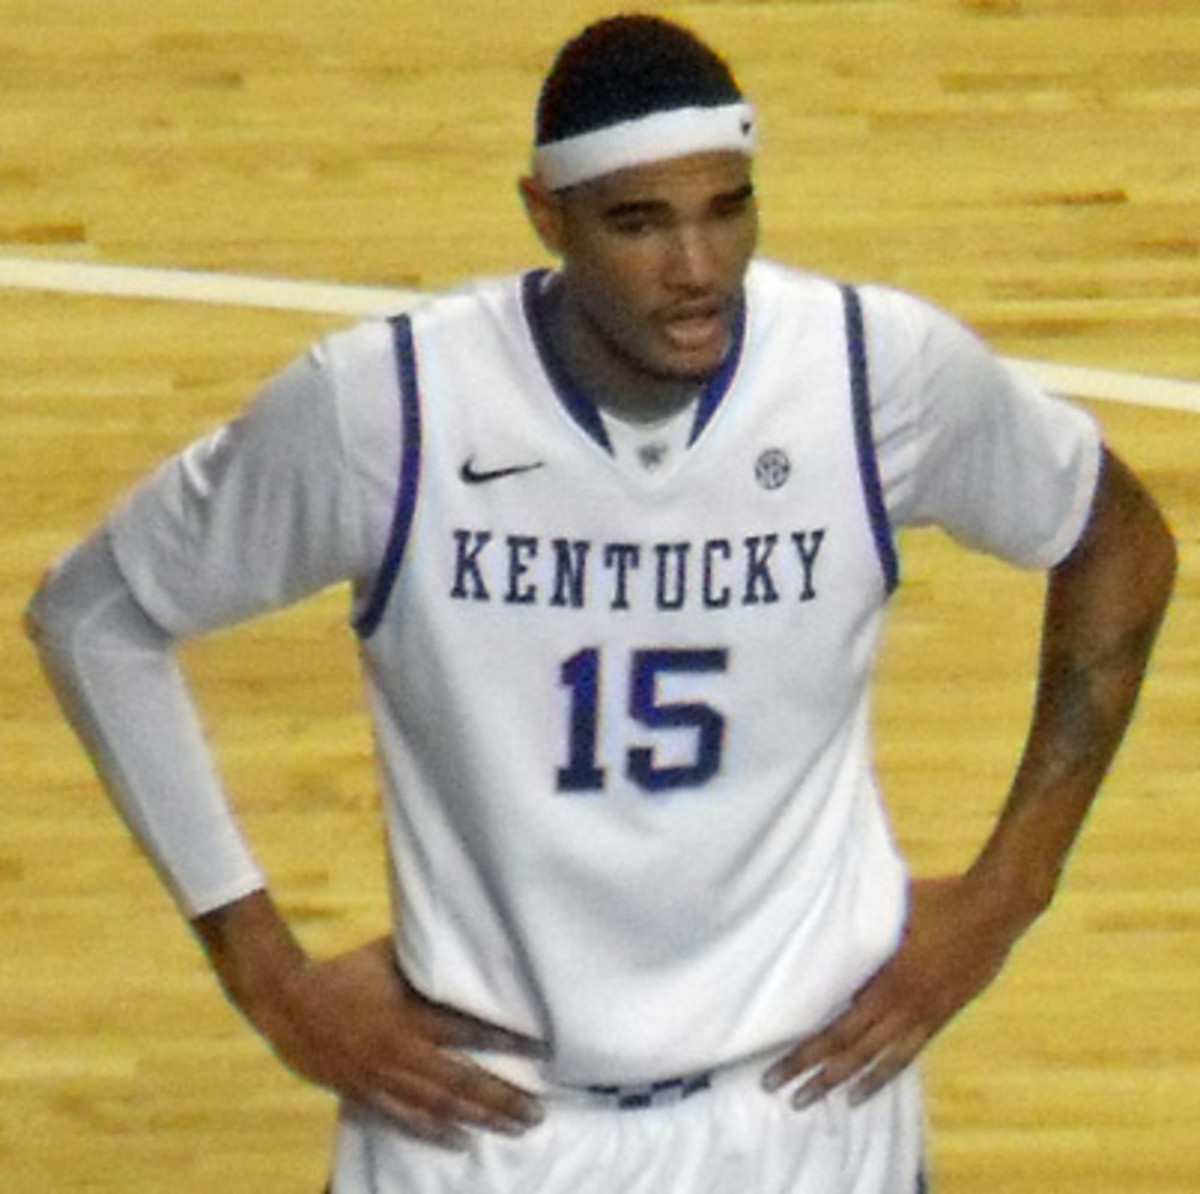 Willie Cauley-Stein in 2012. (Photo: Acdixon/Wikimedia Commons)